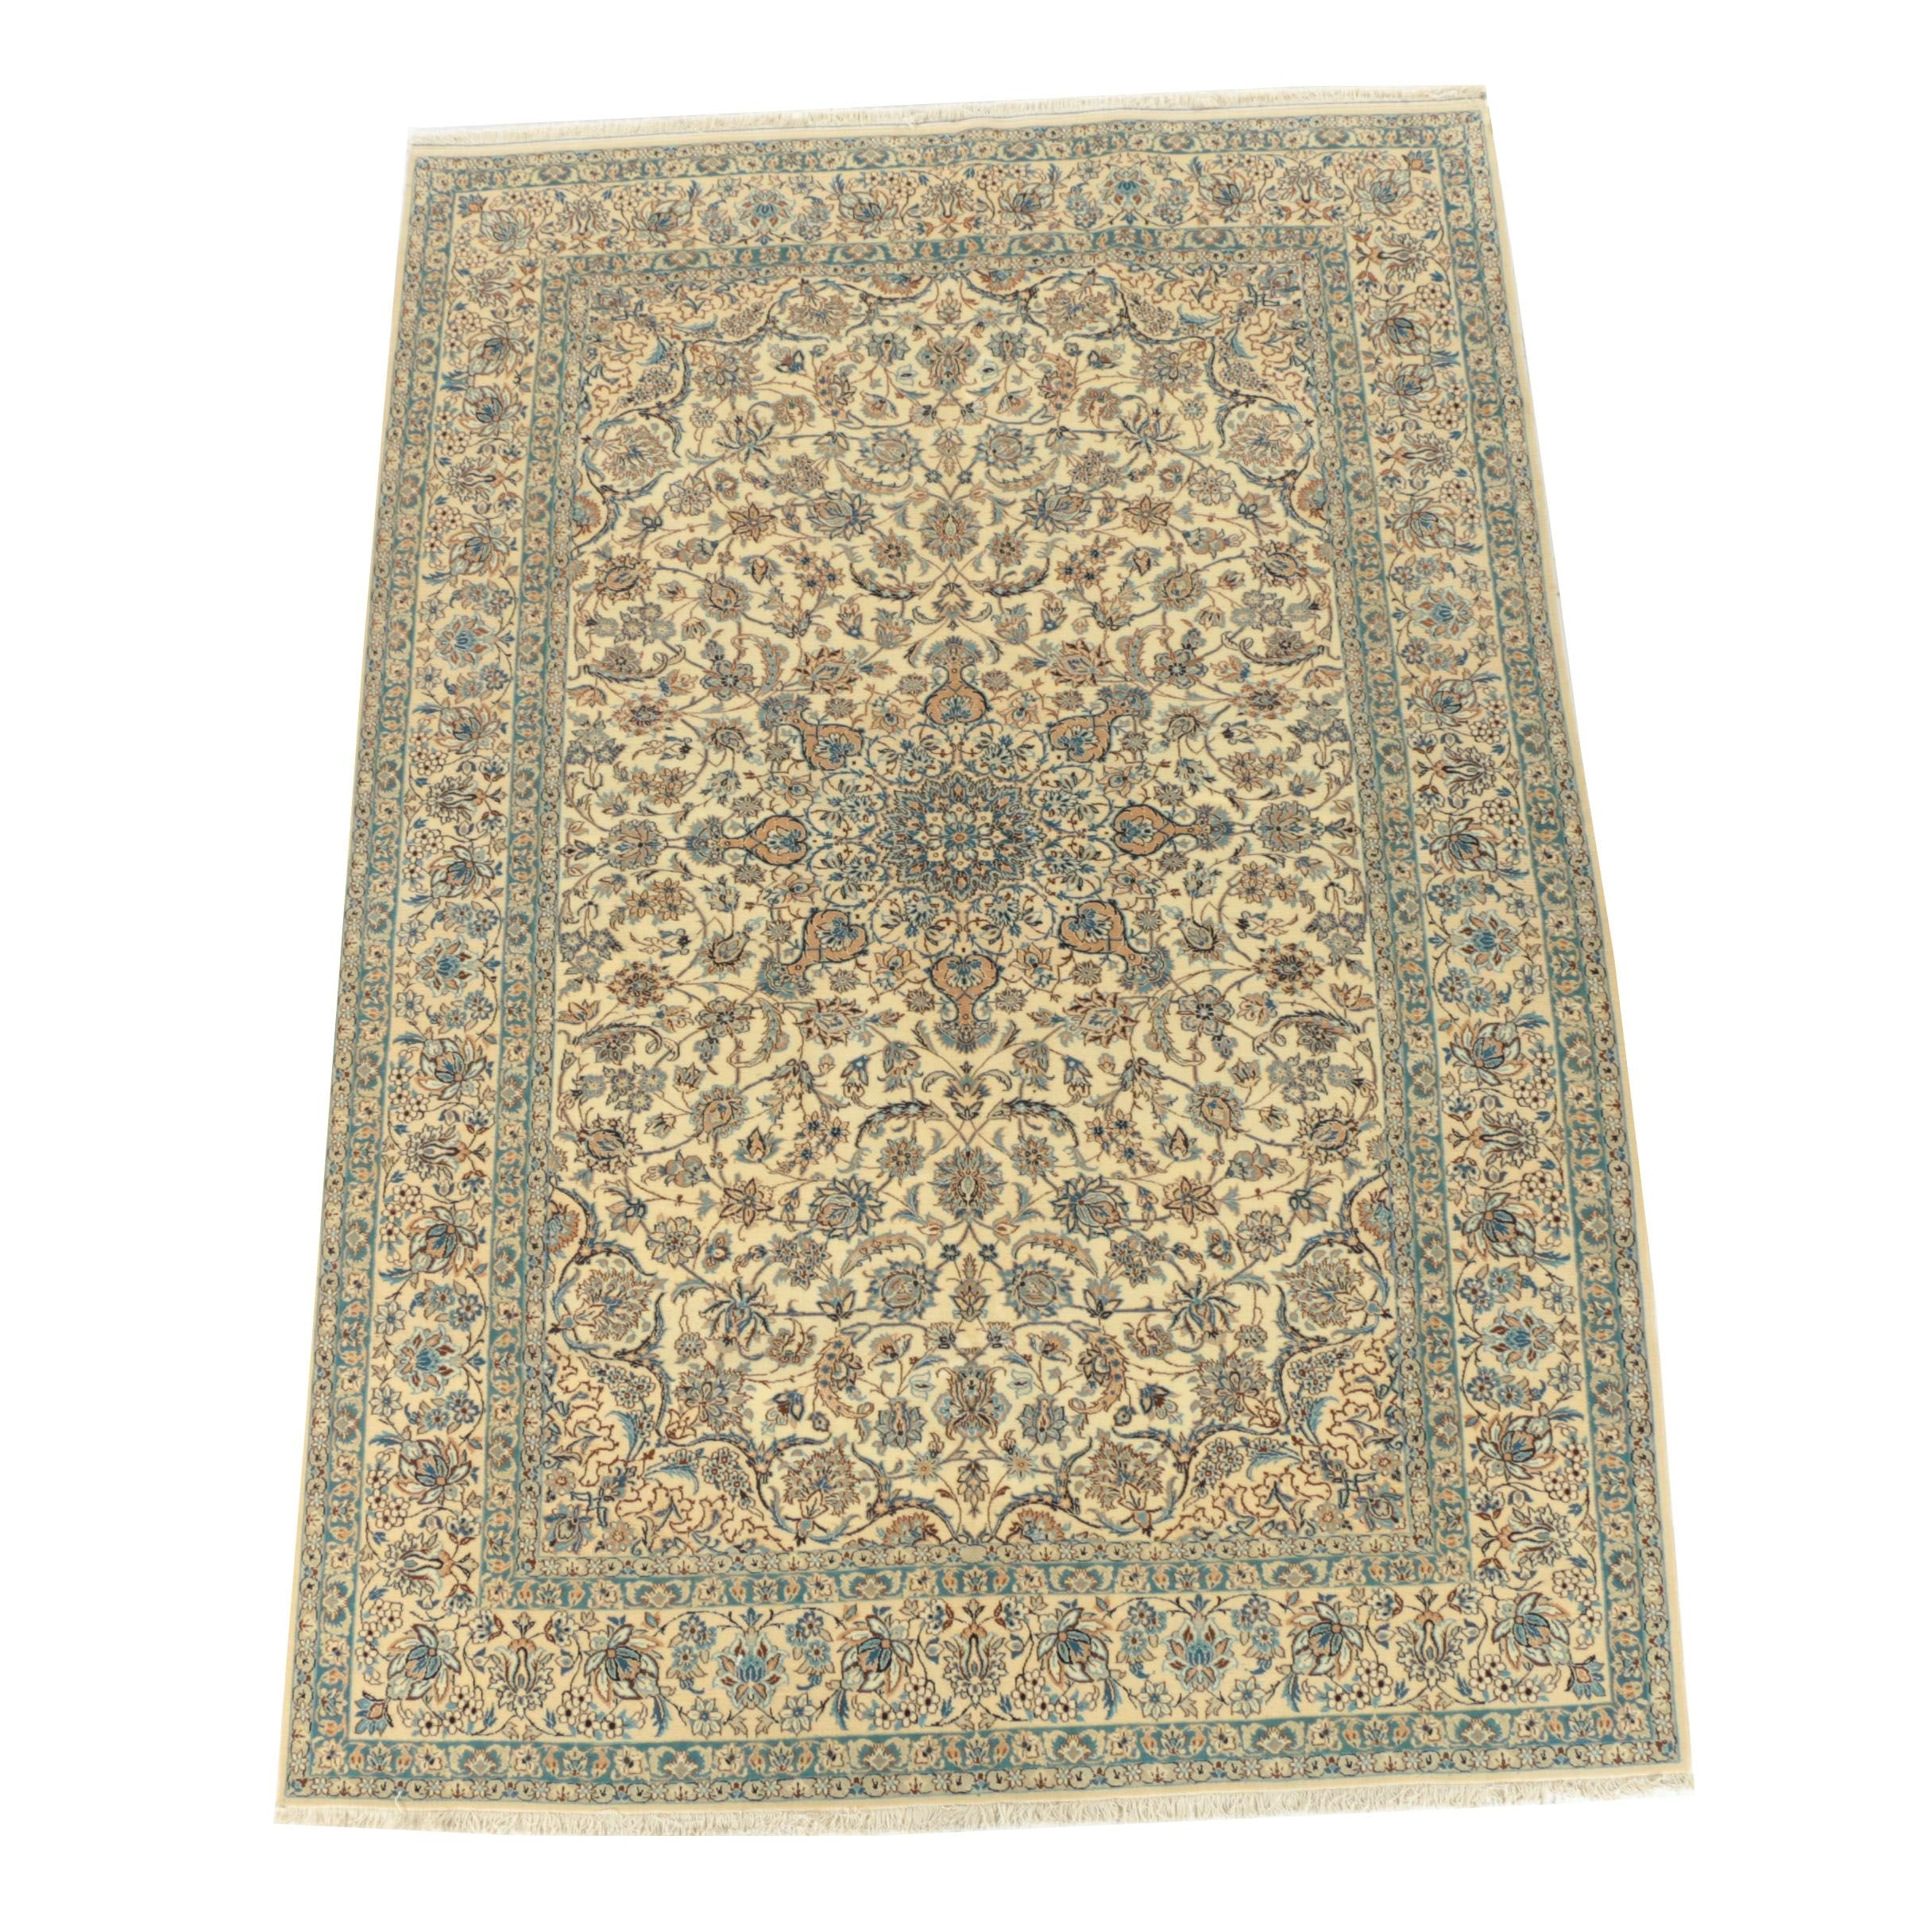 Hand-Knotted Transylvanian Nain Wool Area Rug